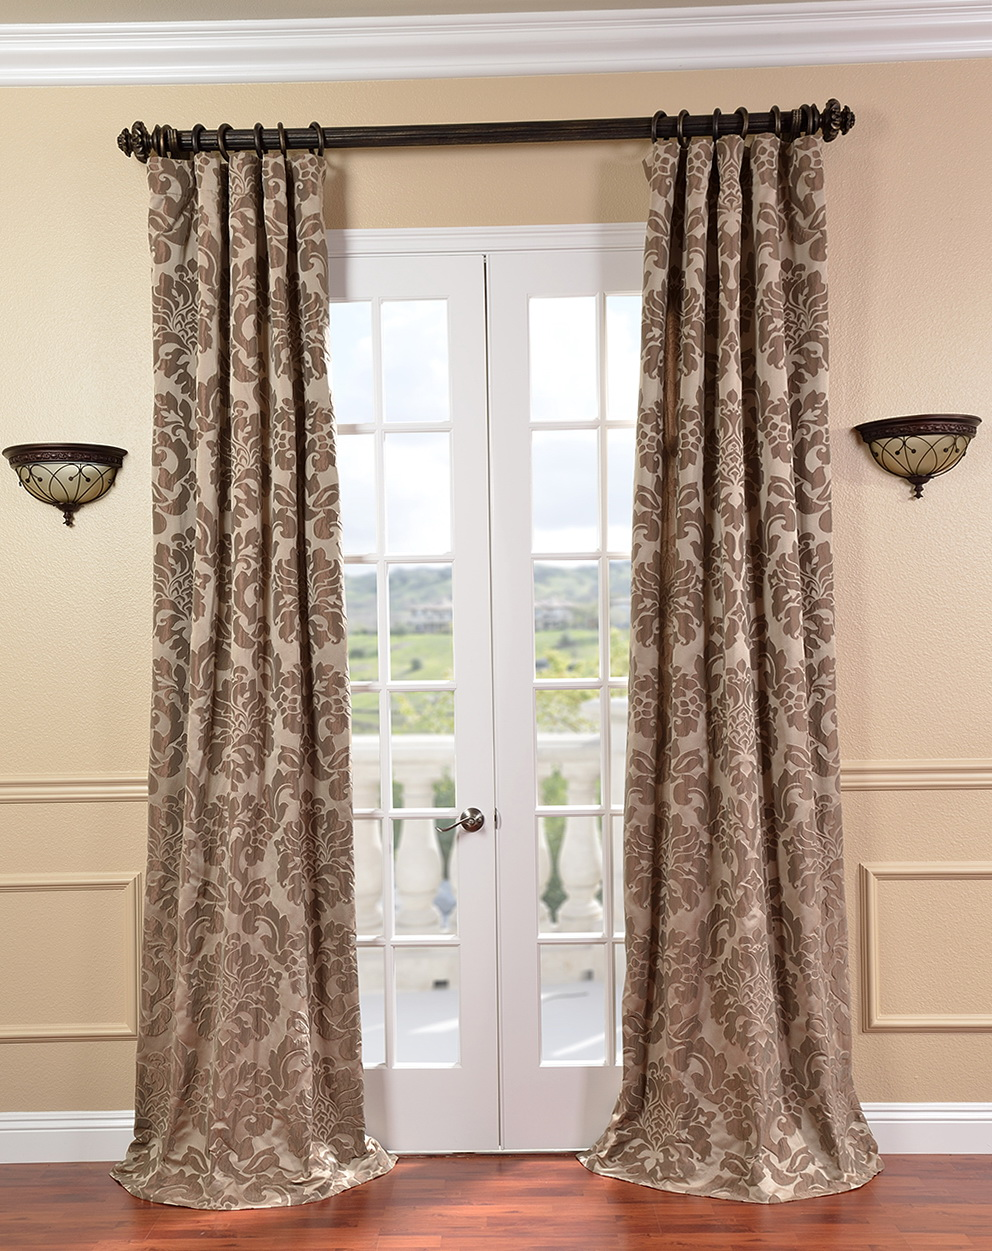 Chocolate Brown And White Curtains Home Design Ideas